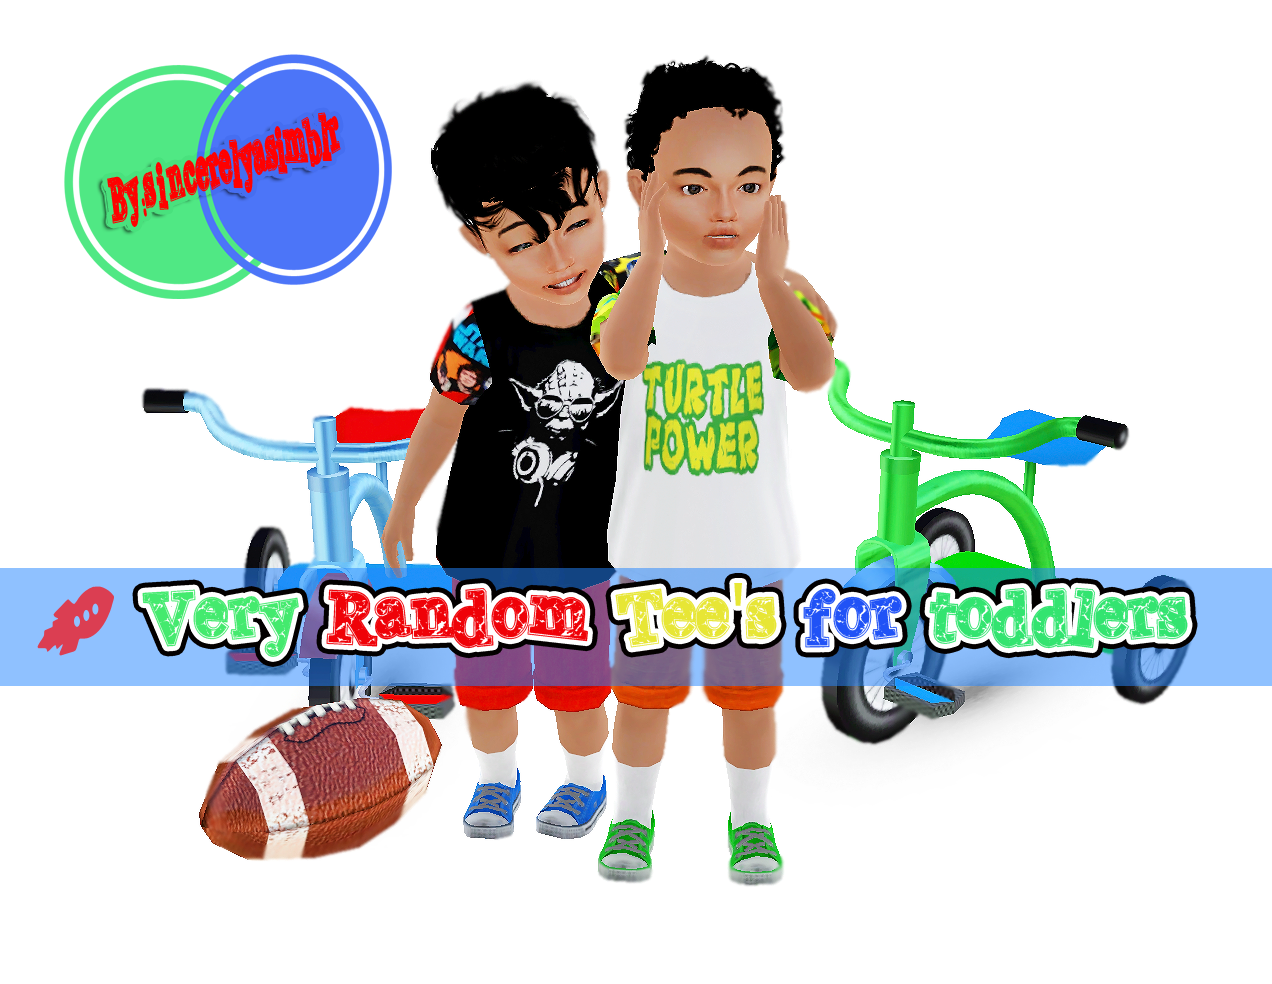 Very random tees for toddlers by Sincerelyasimblr